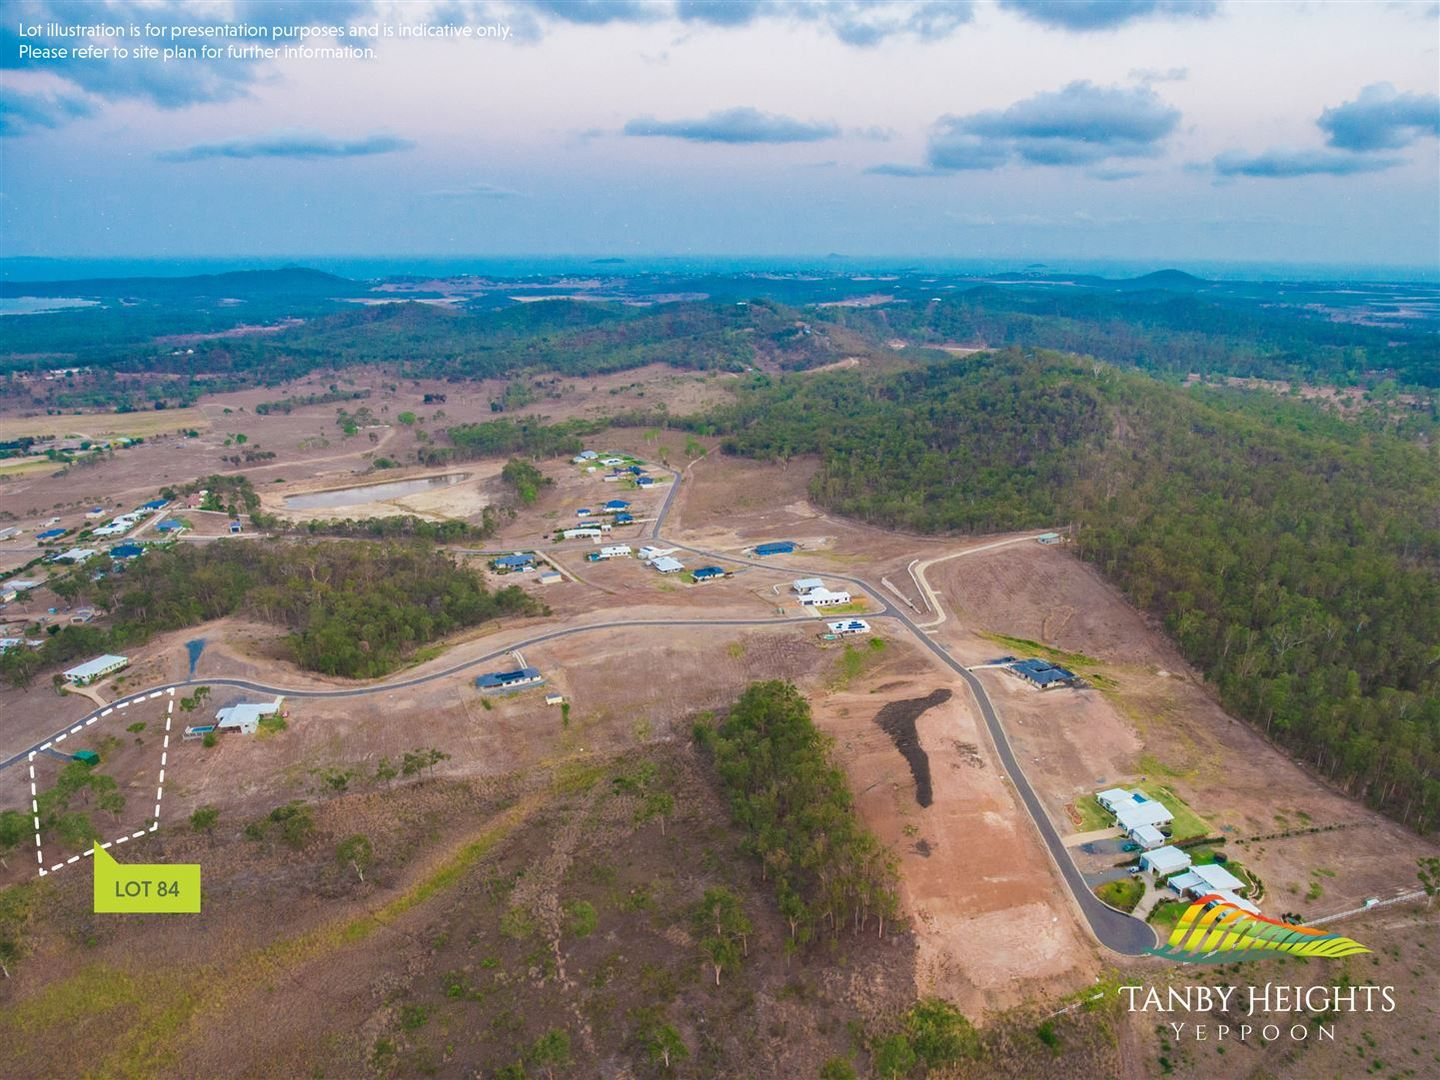 Lot 84 Ridgeline Drive - Tanby Heights Estate, Tanby QLD 4703, Image 2